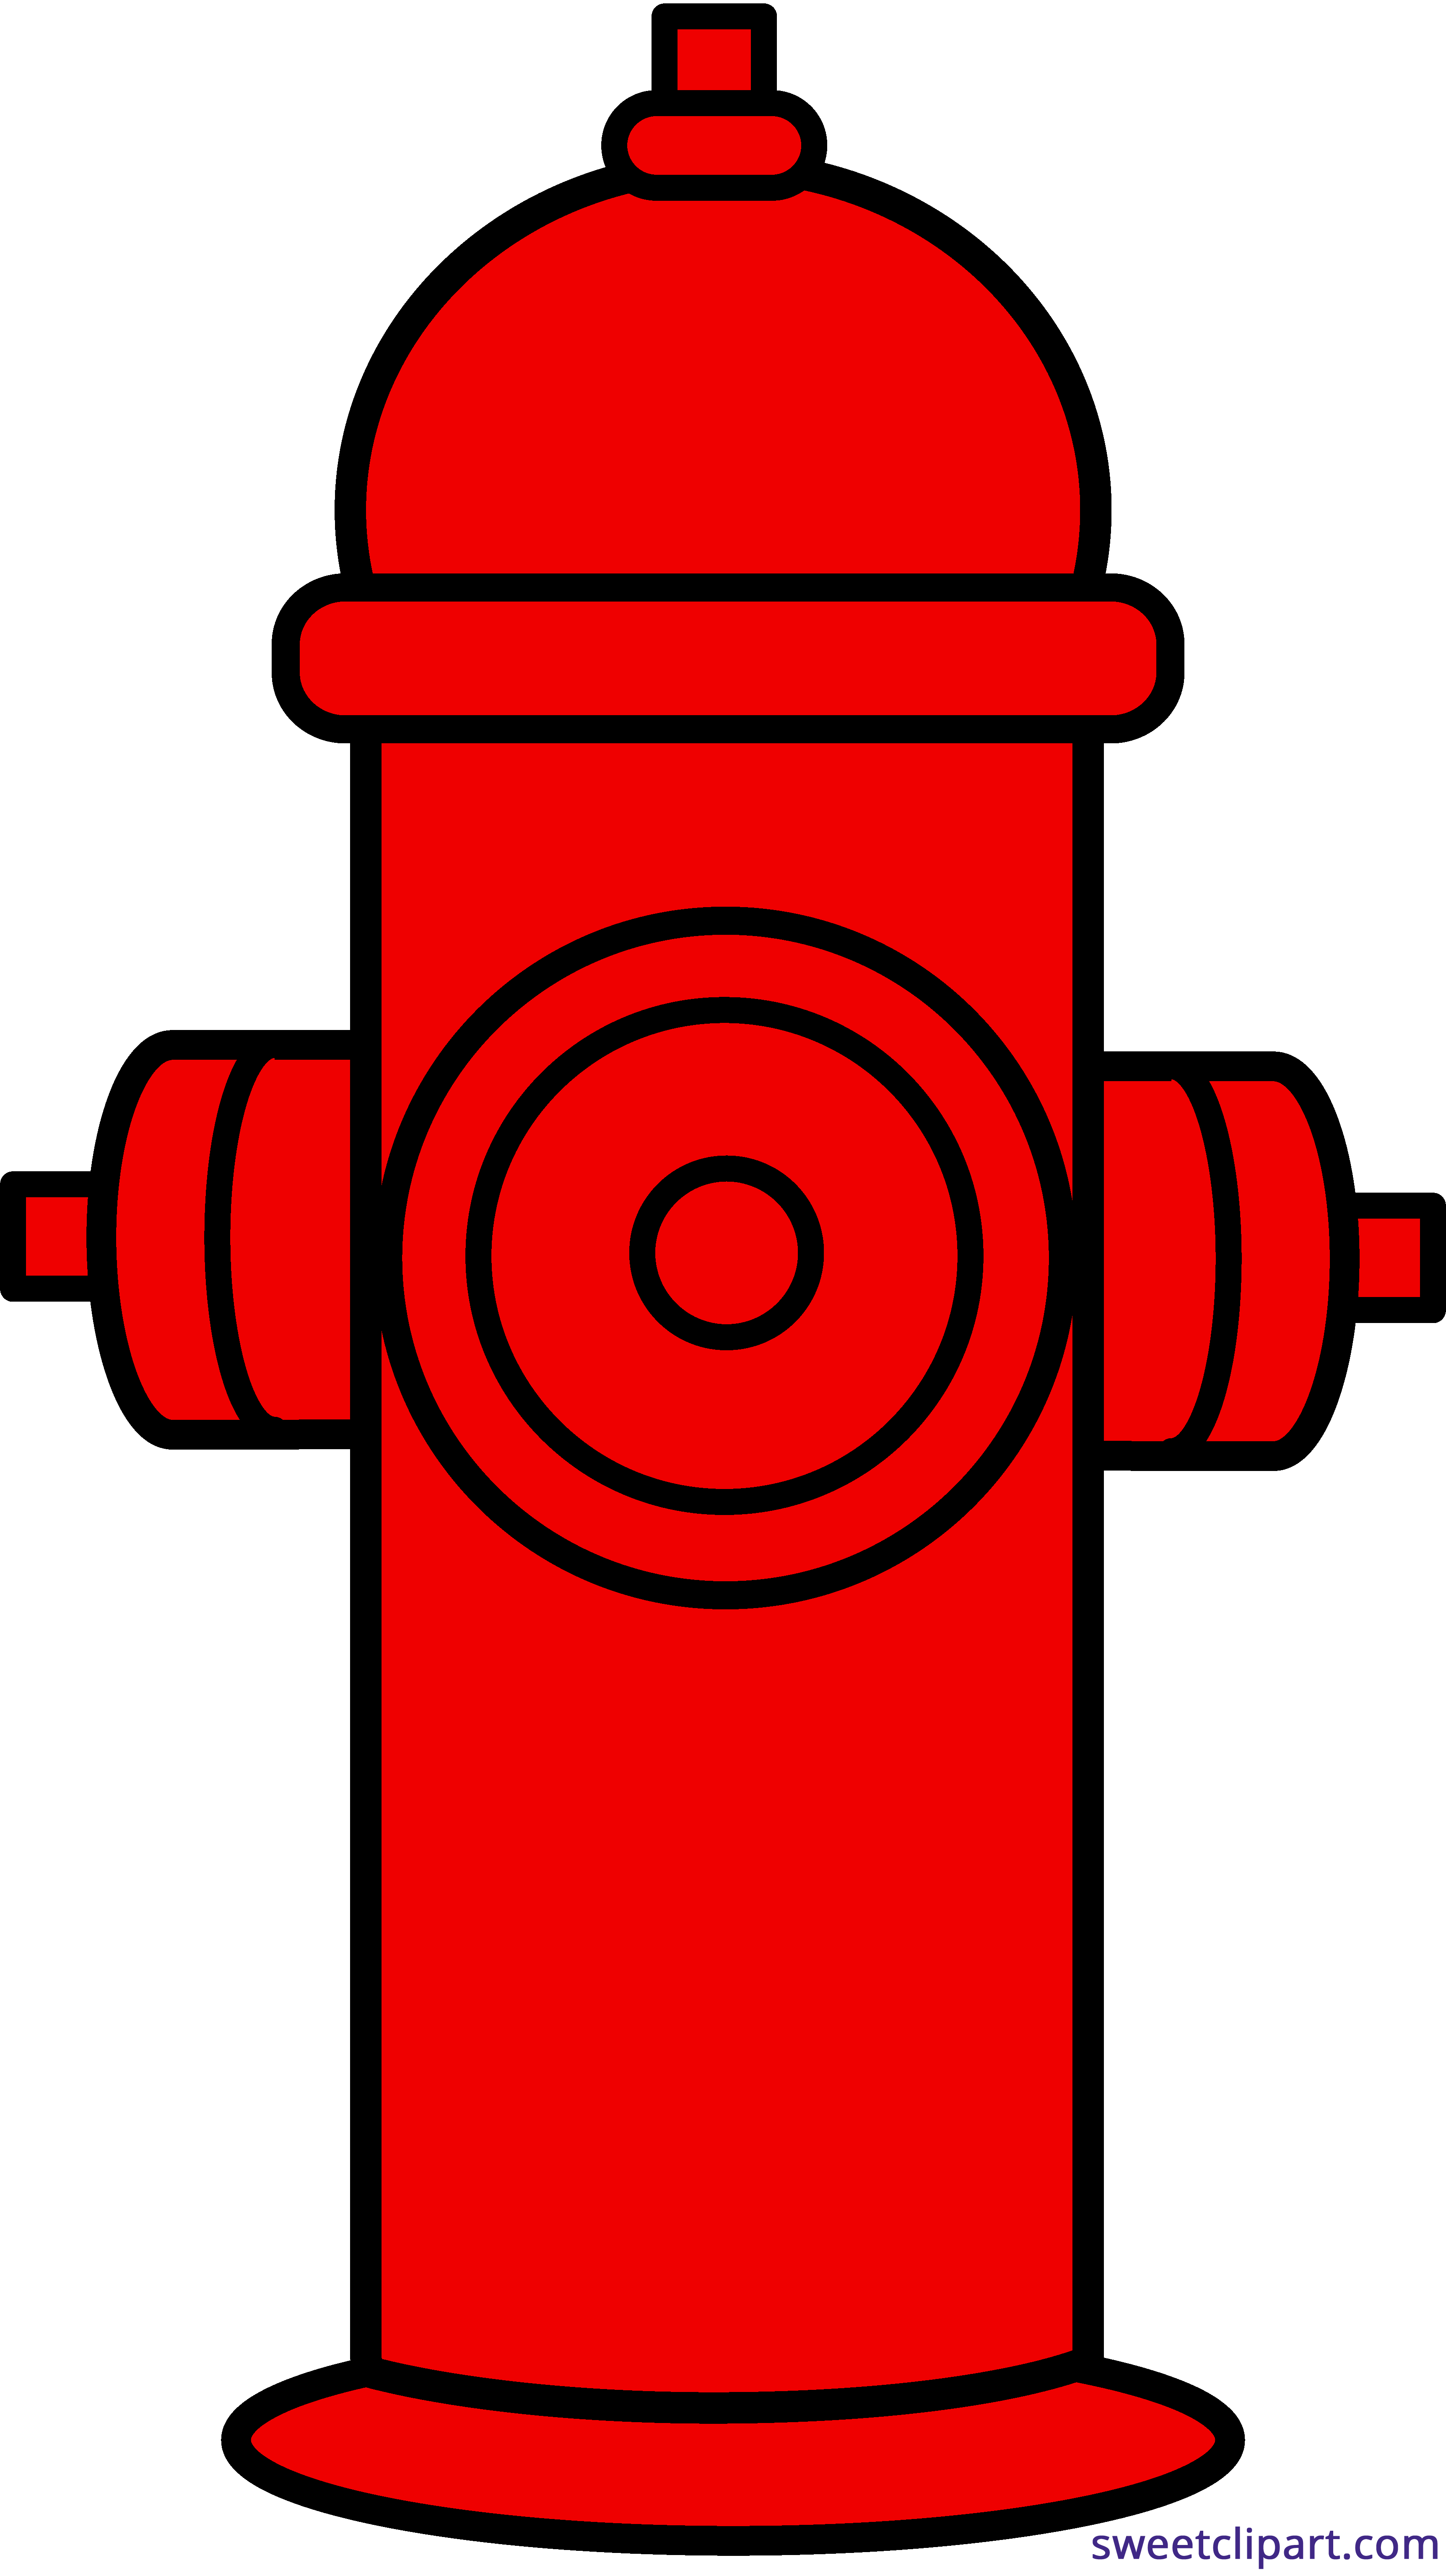 Water clipart red. Fire hydrant sweet clip